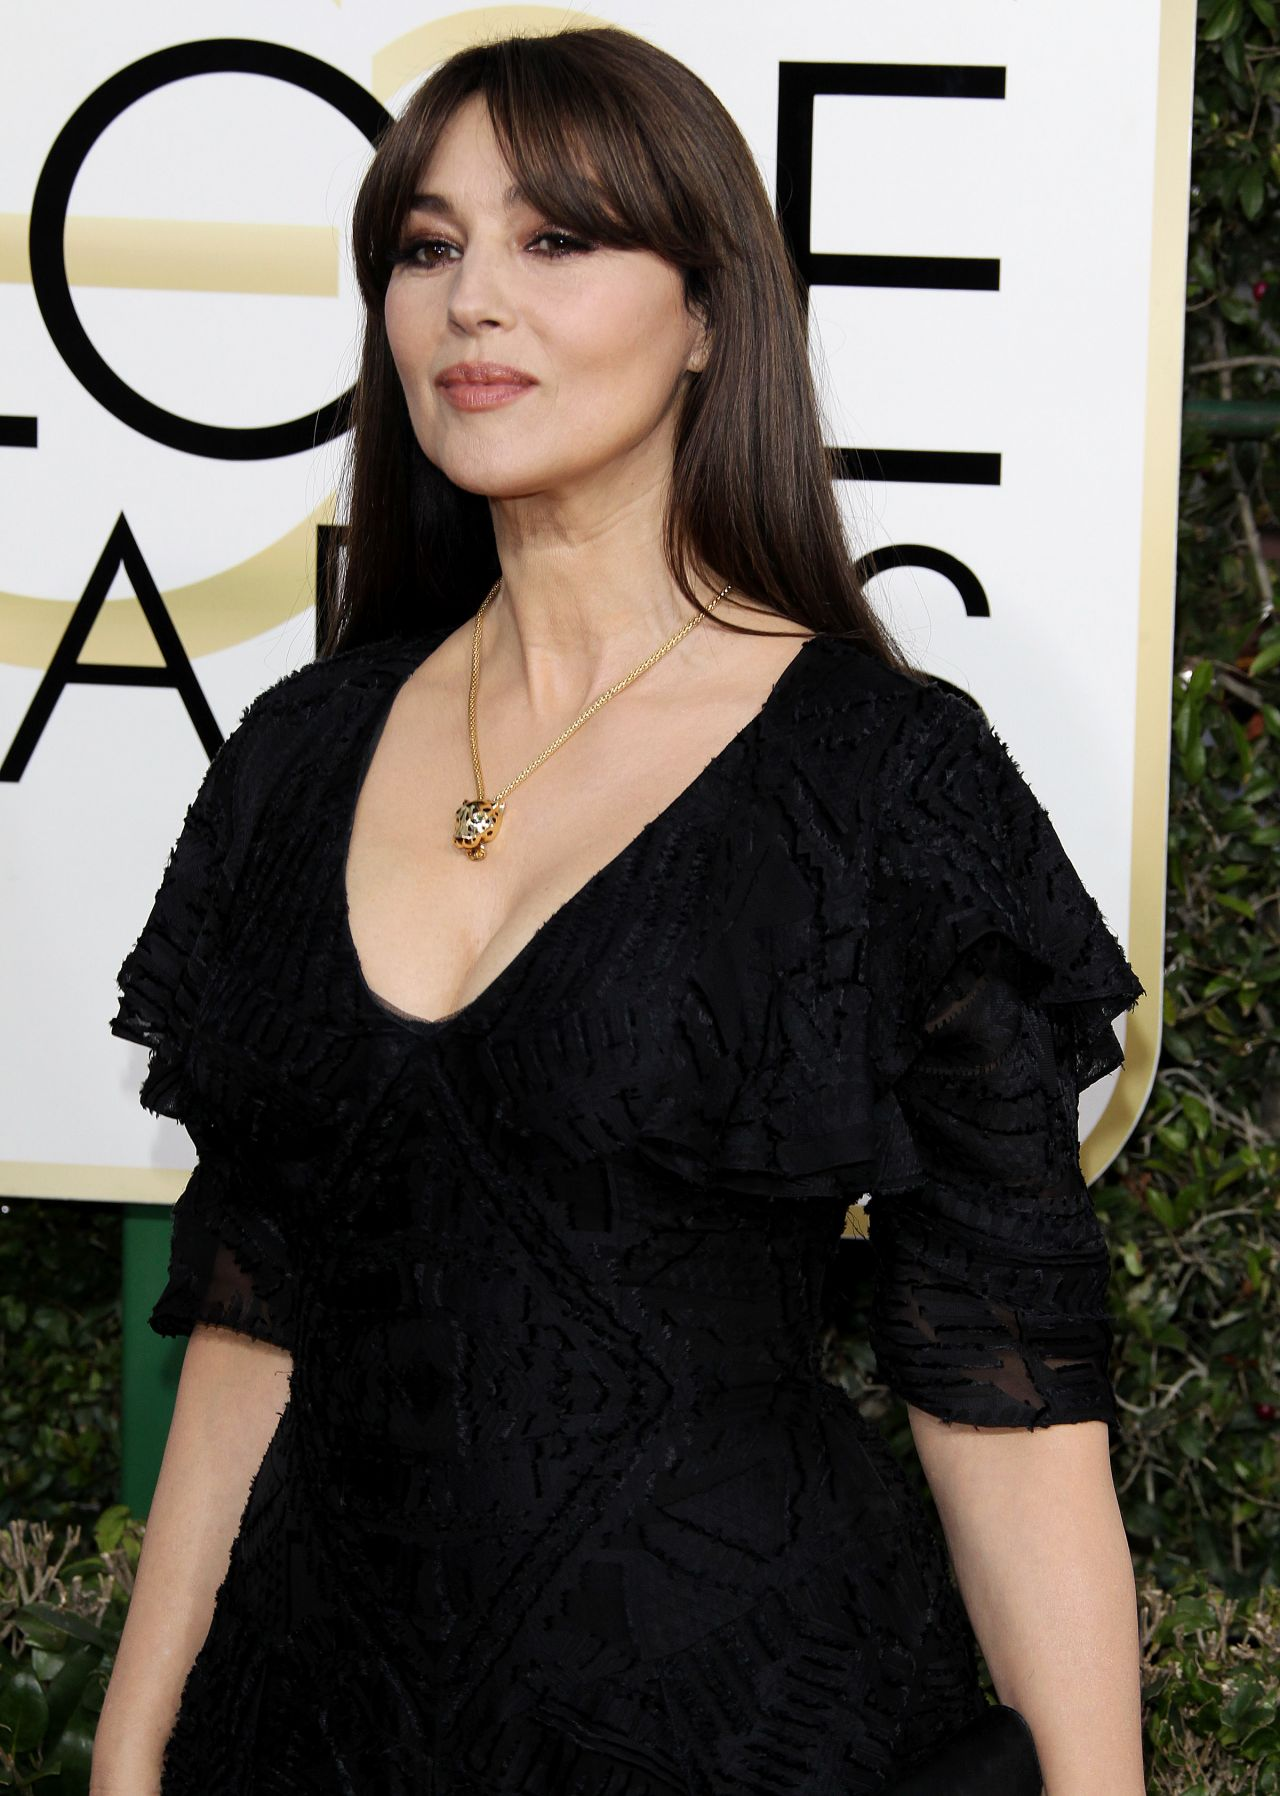 Think, monica bellucci awards really